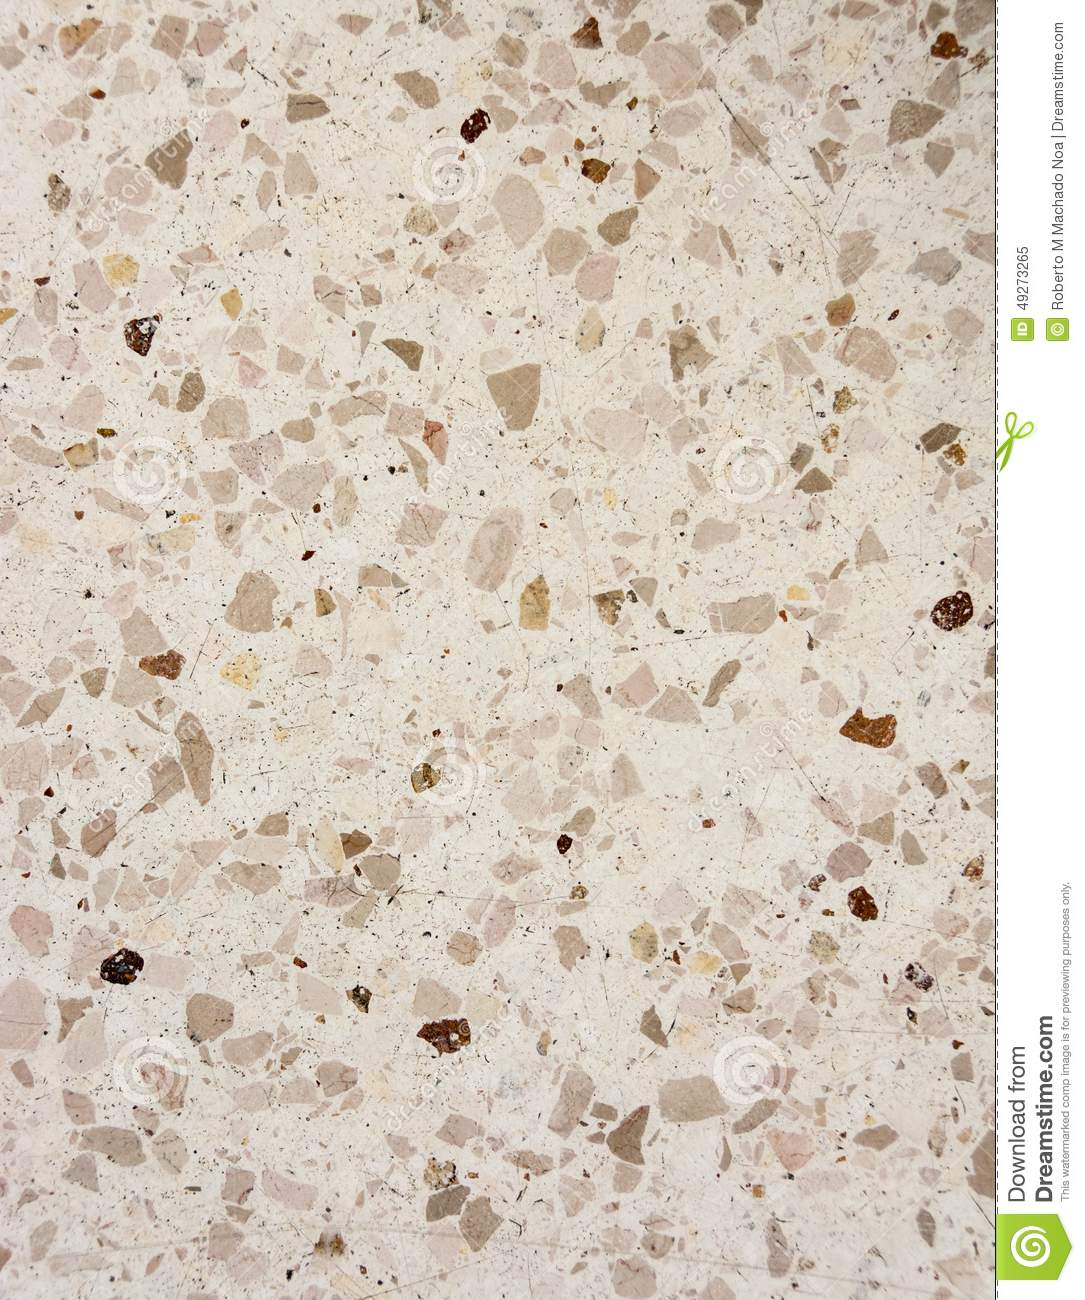 Granite floor texture stock photo image 49273265 for Pisos de granito blanco